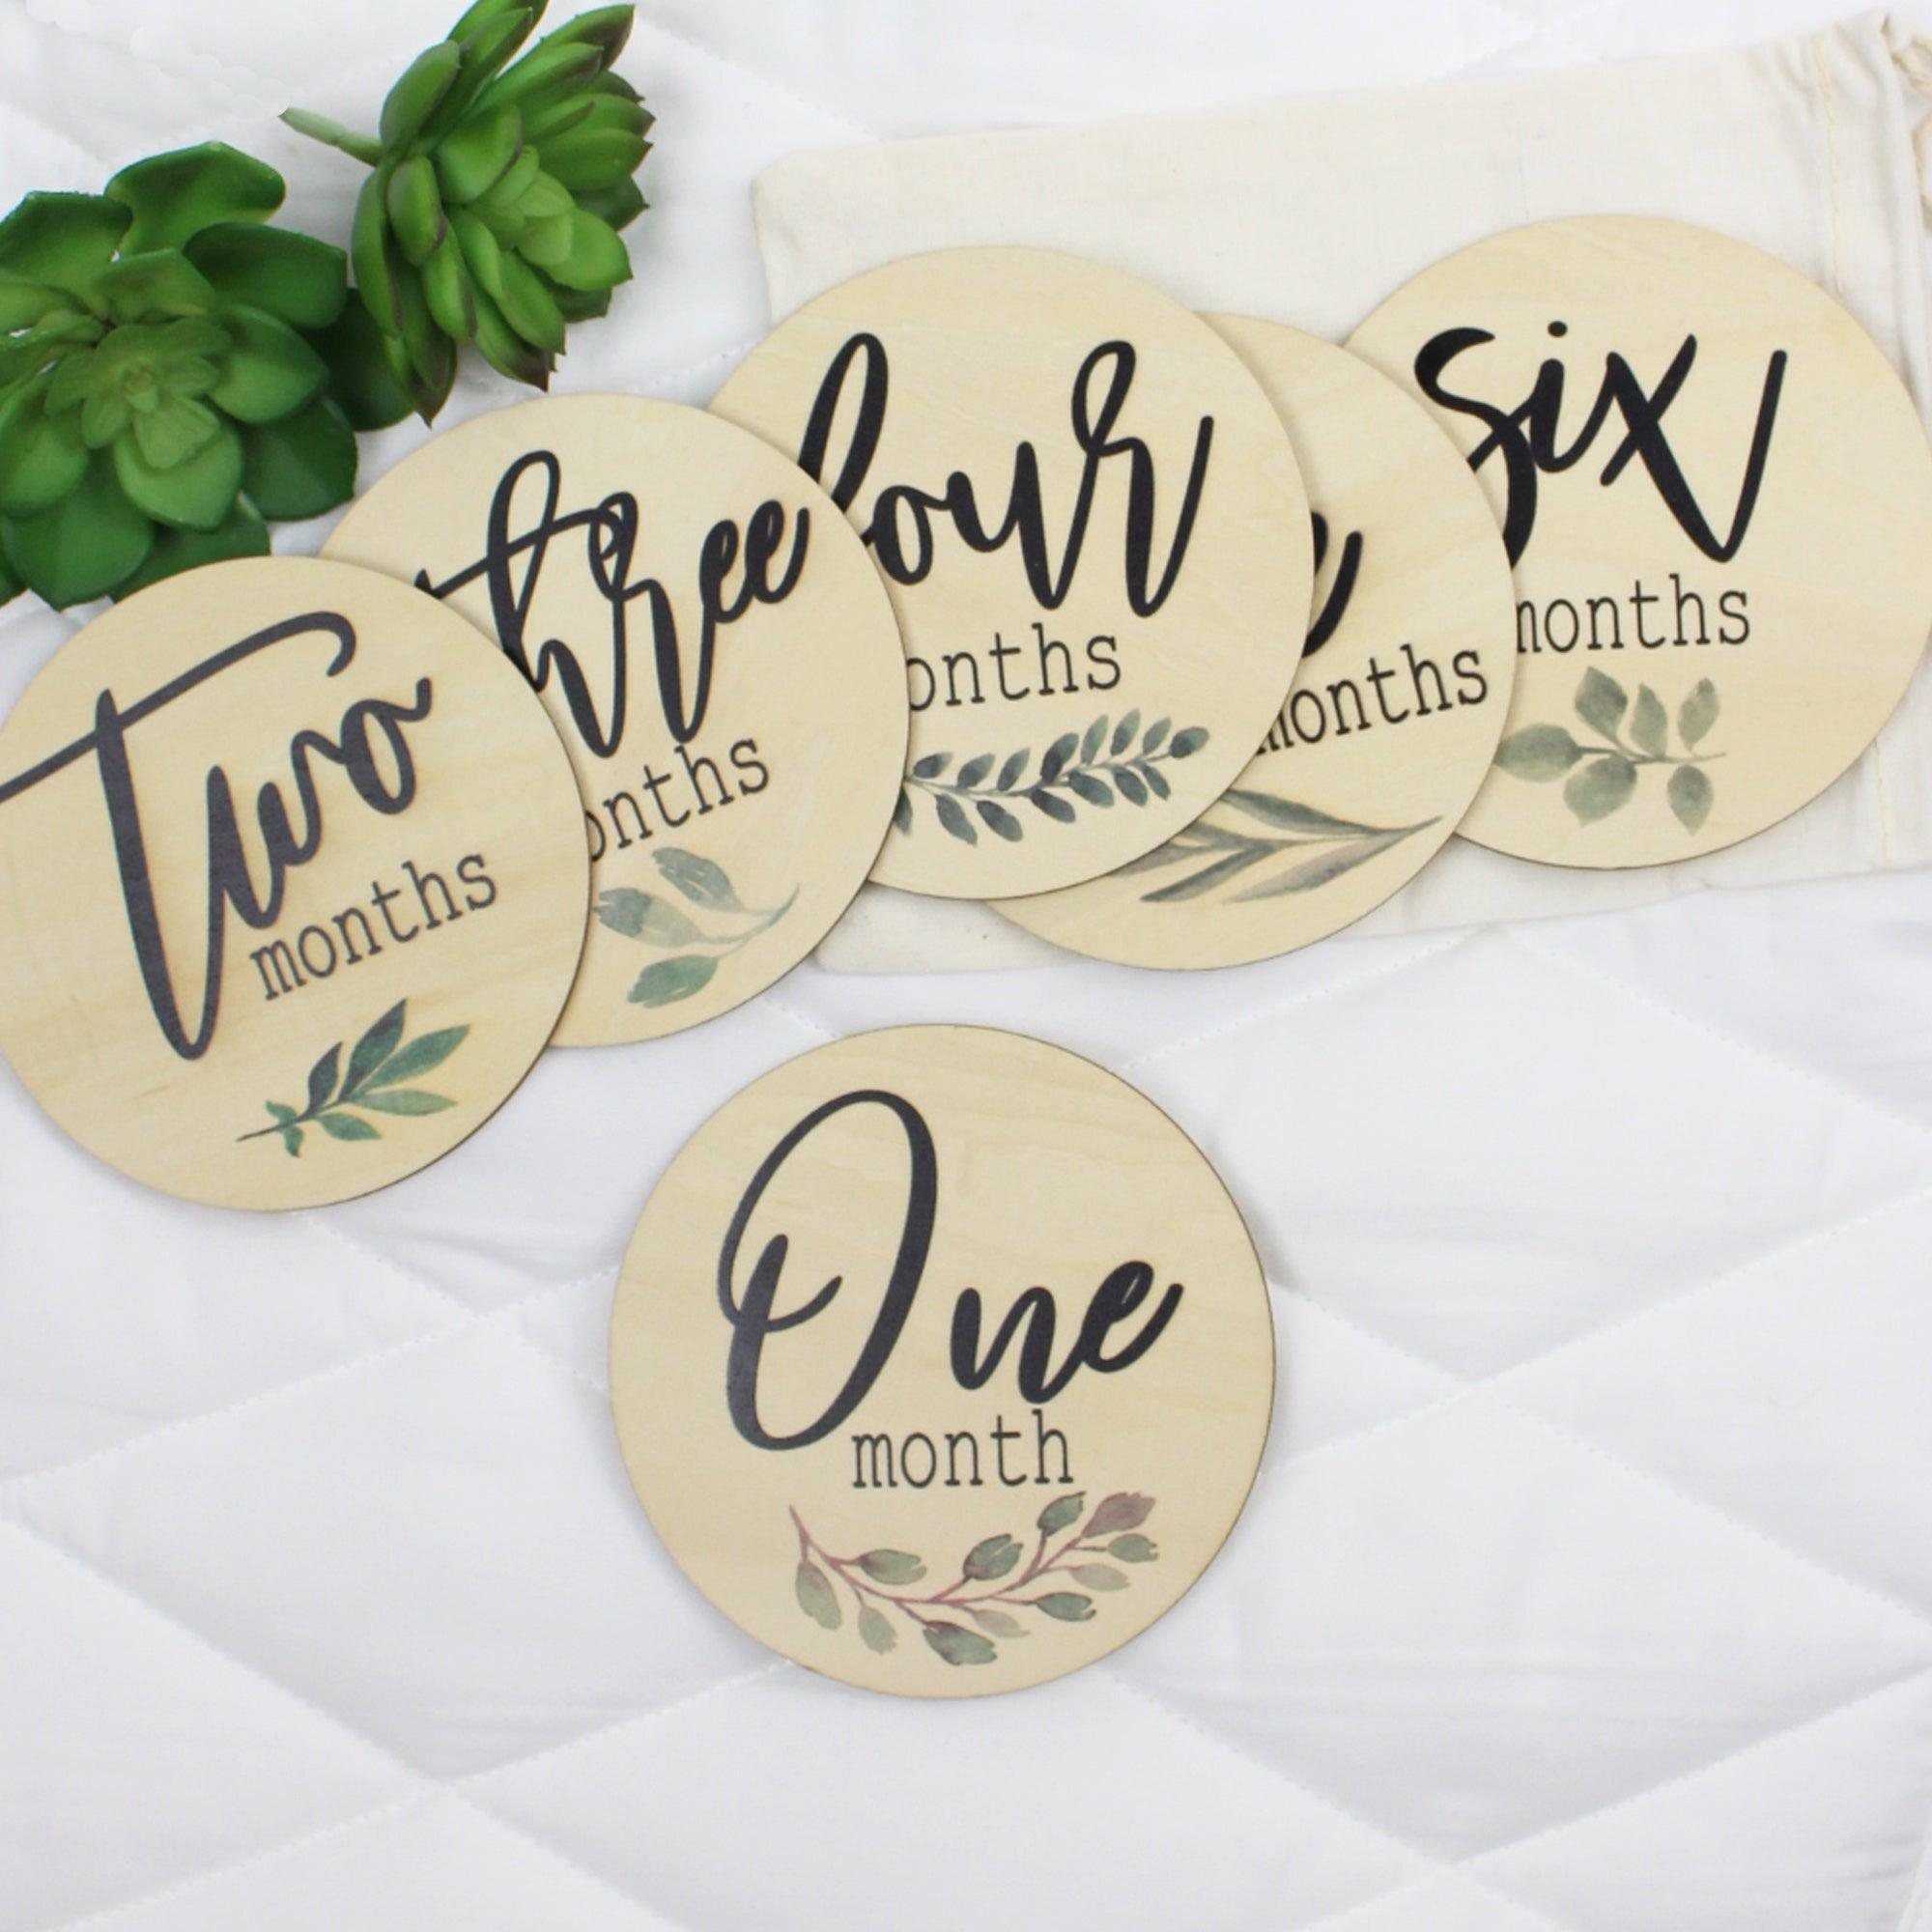 Botanical style milestone cards from Birchmark Designs